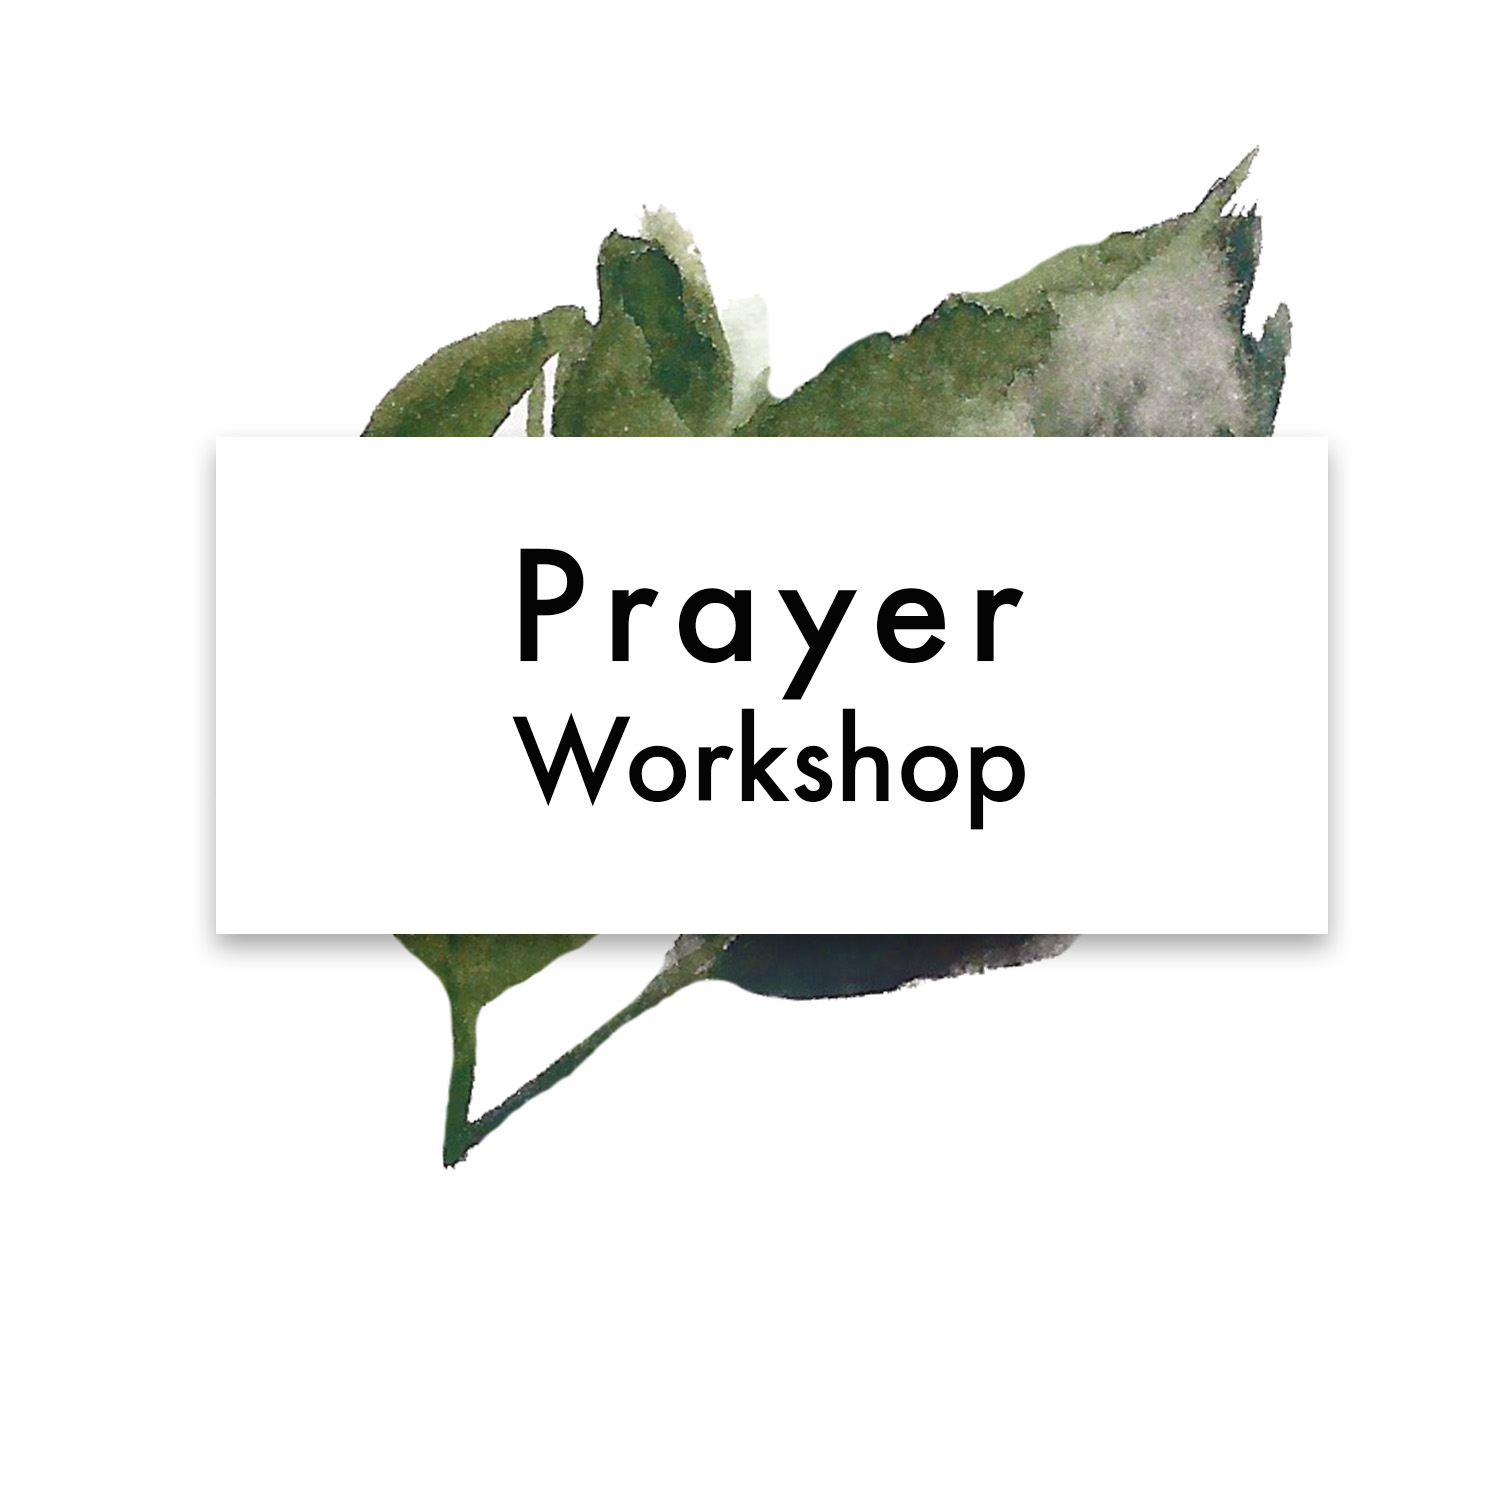 prayer-workshop-3.jpg